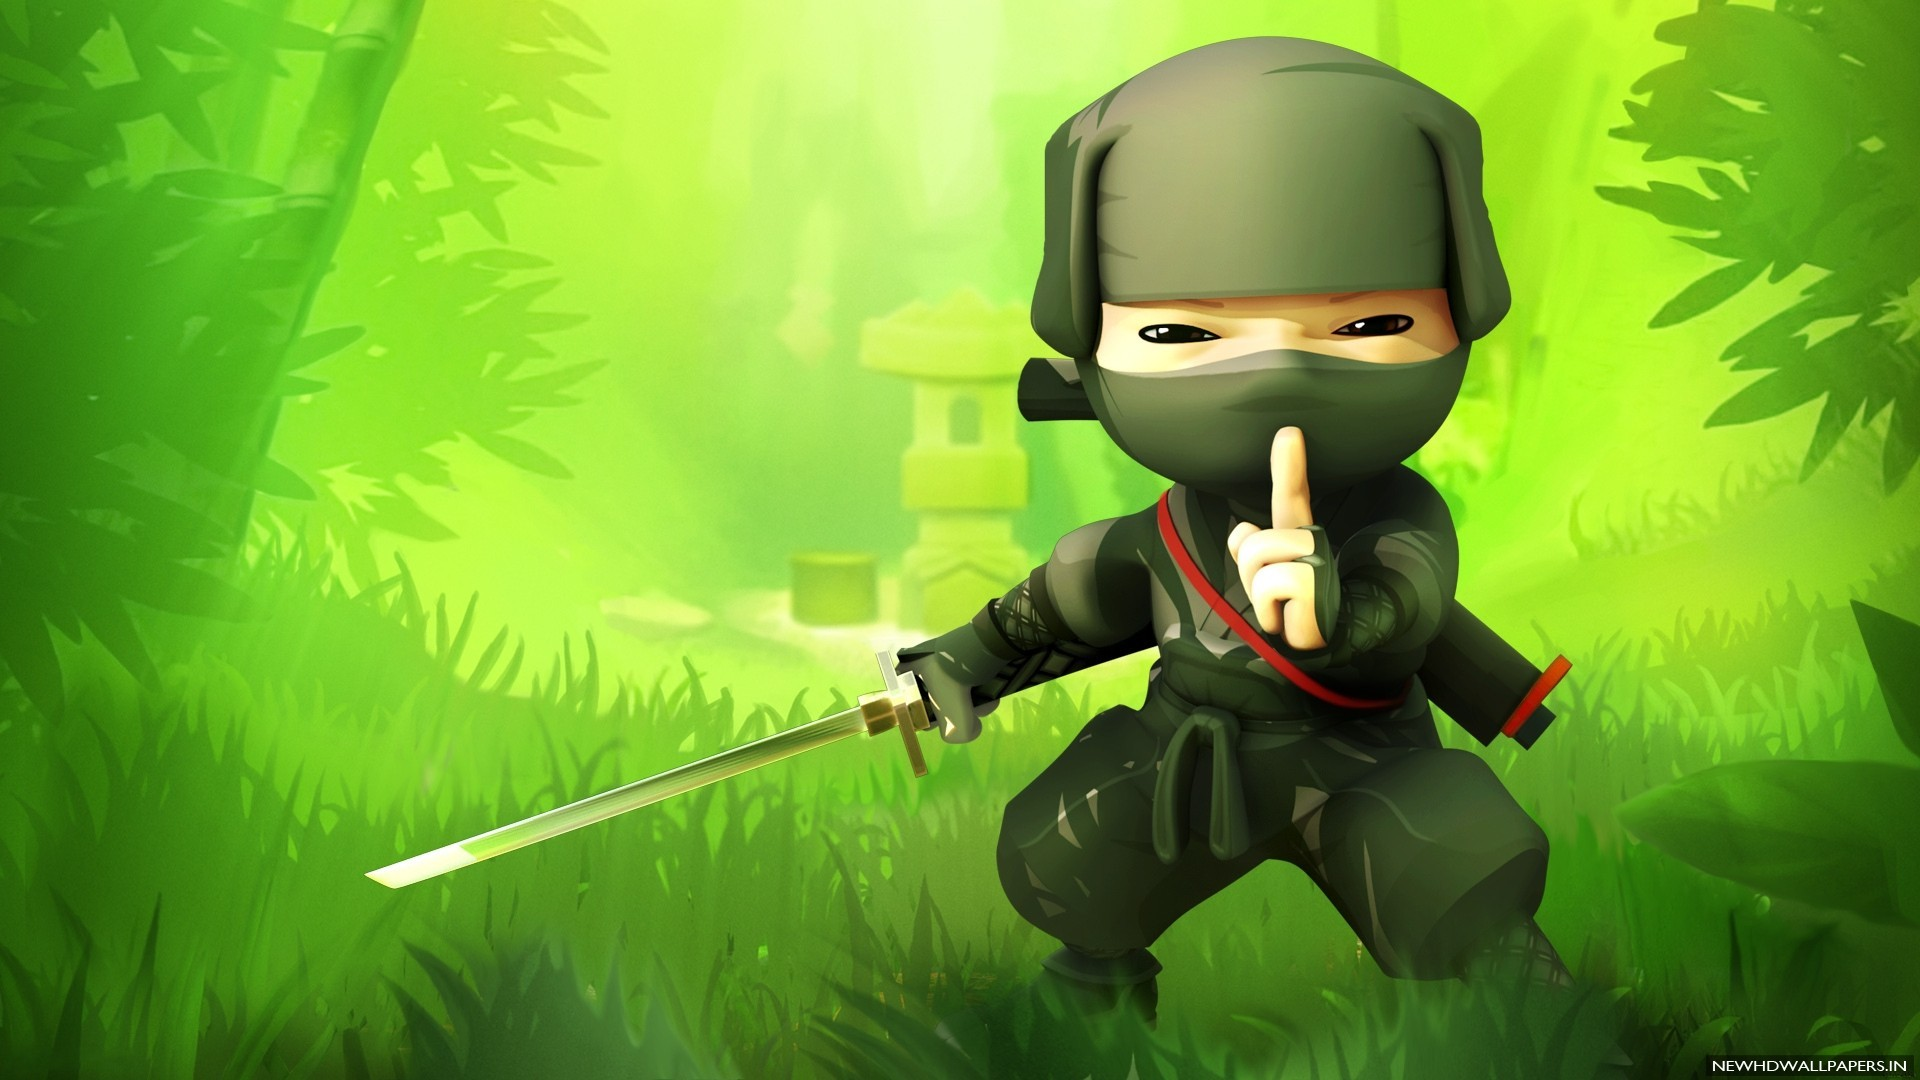 Hd wallpaper cartoon - Flipped Cartoon Ninja Wallpapers Hd Free New Hd Wallpapers